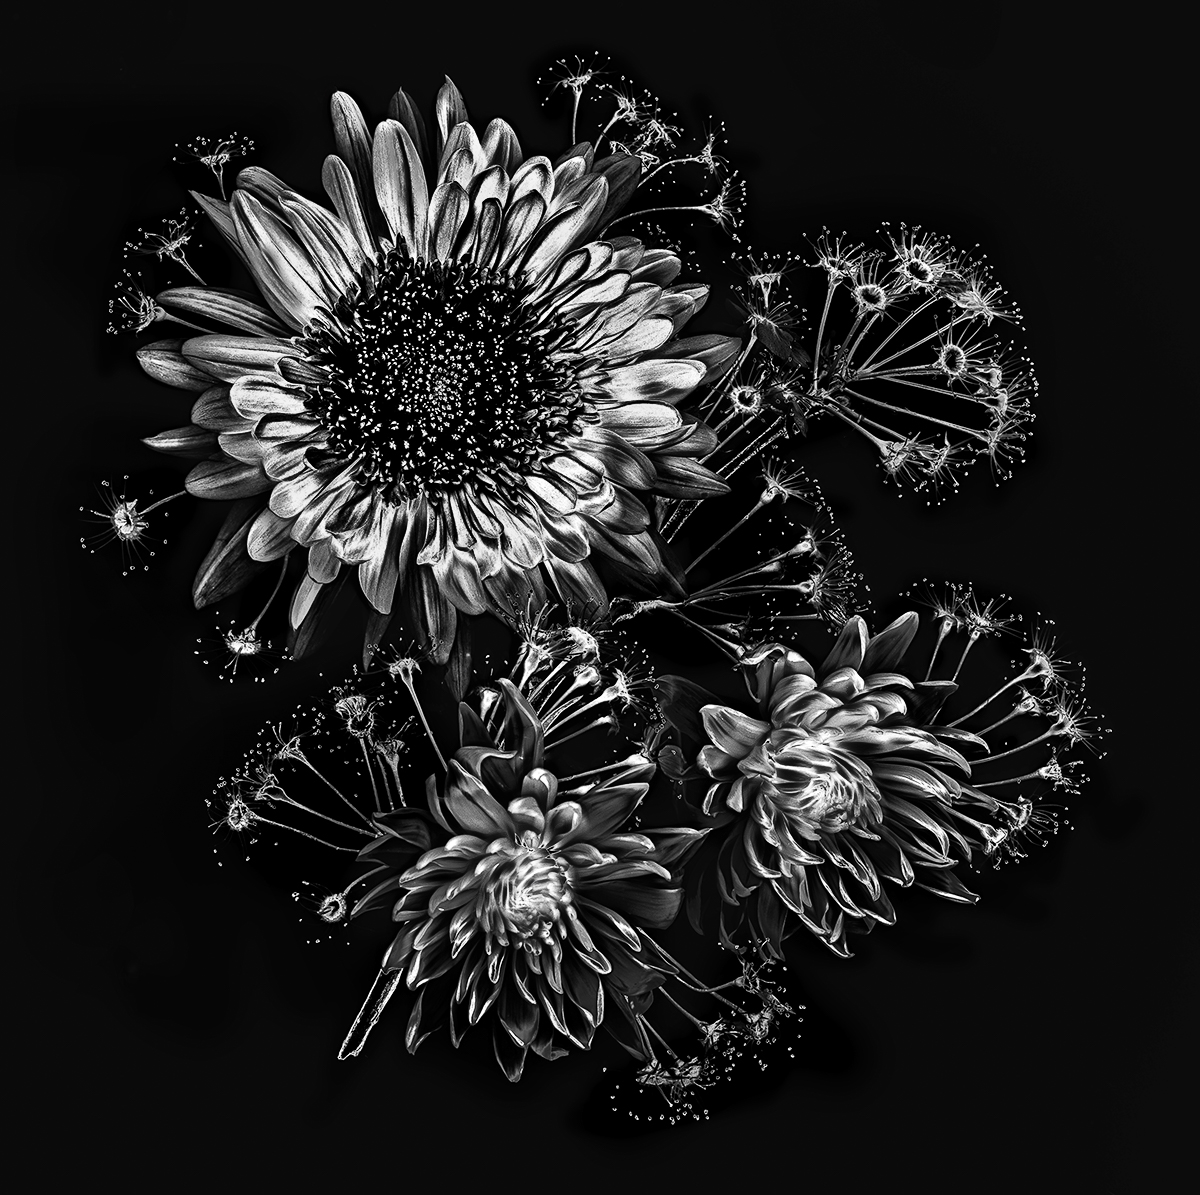 Floral Fireworks in BW